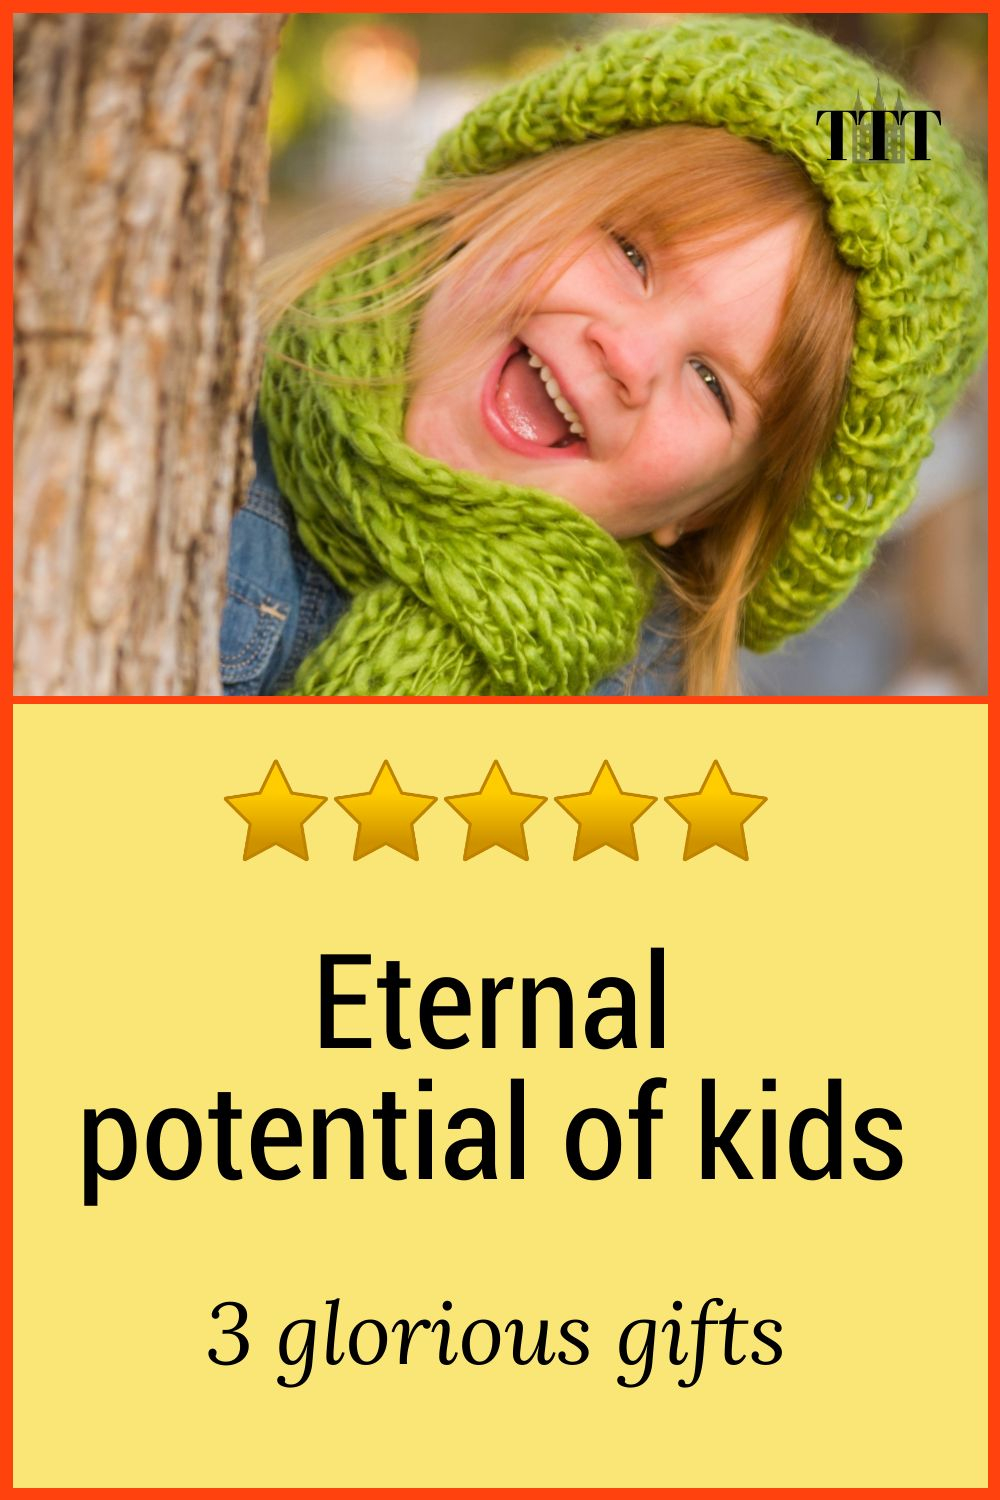 Eternal potential of kids:3 glorious gifts